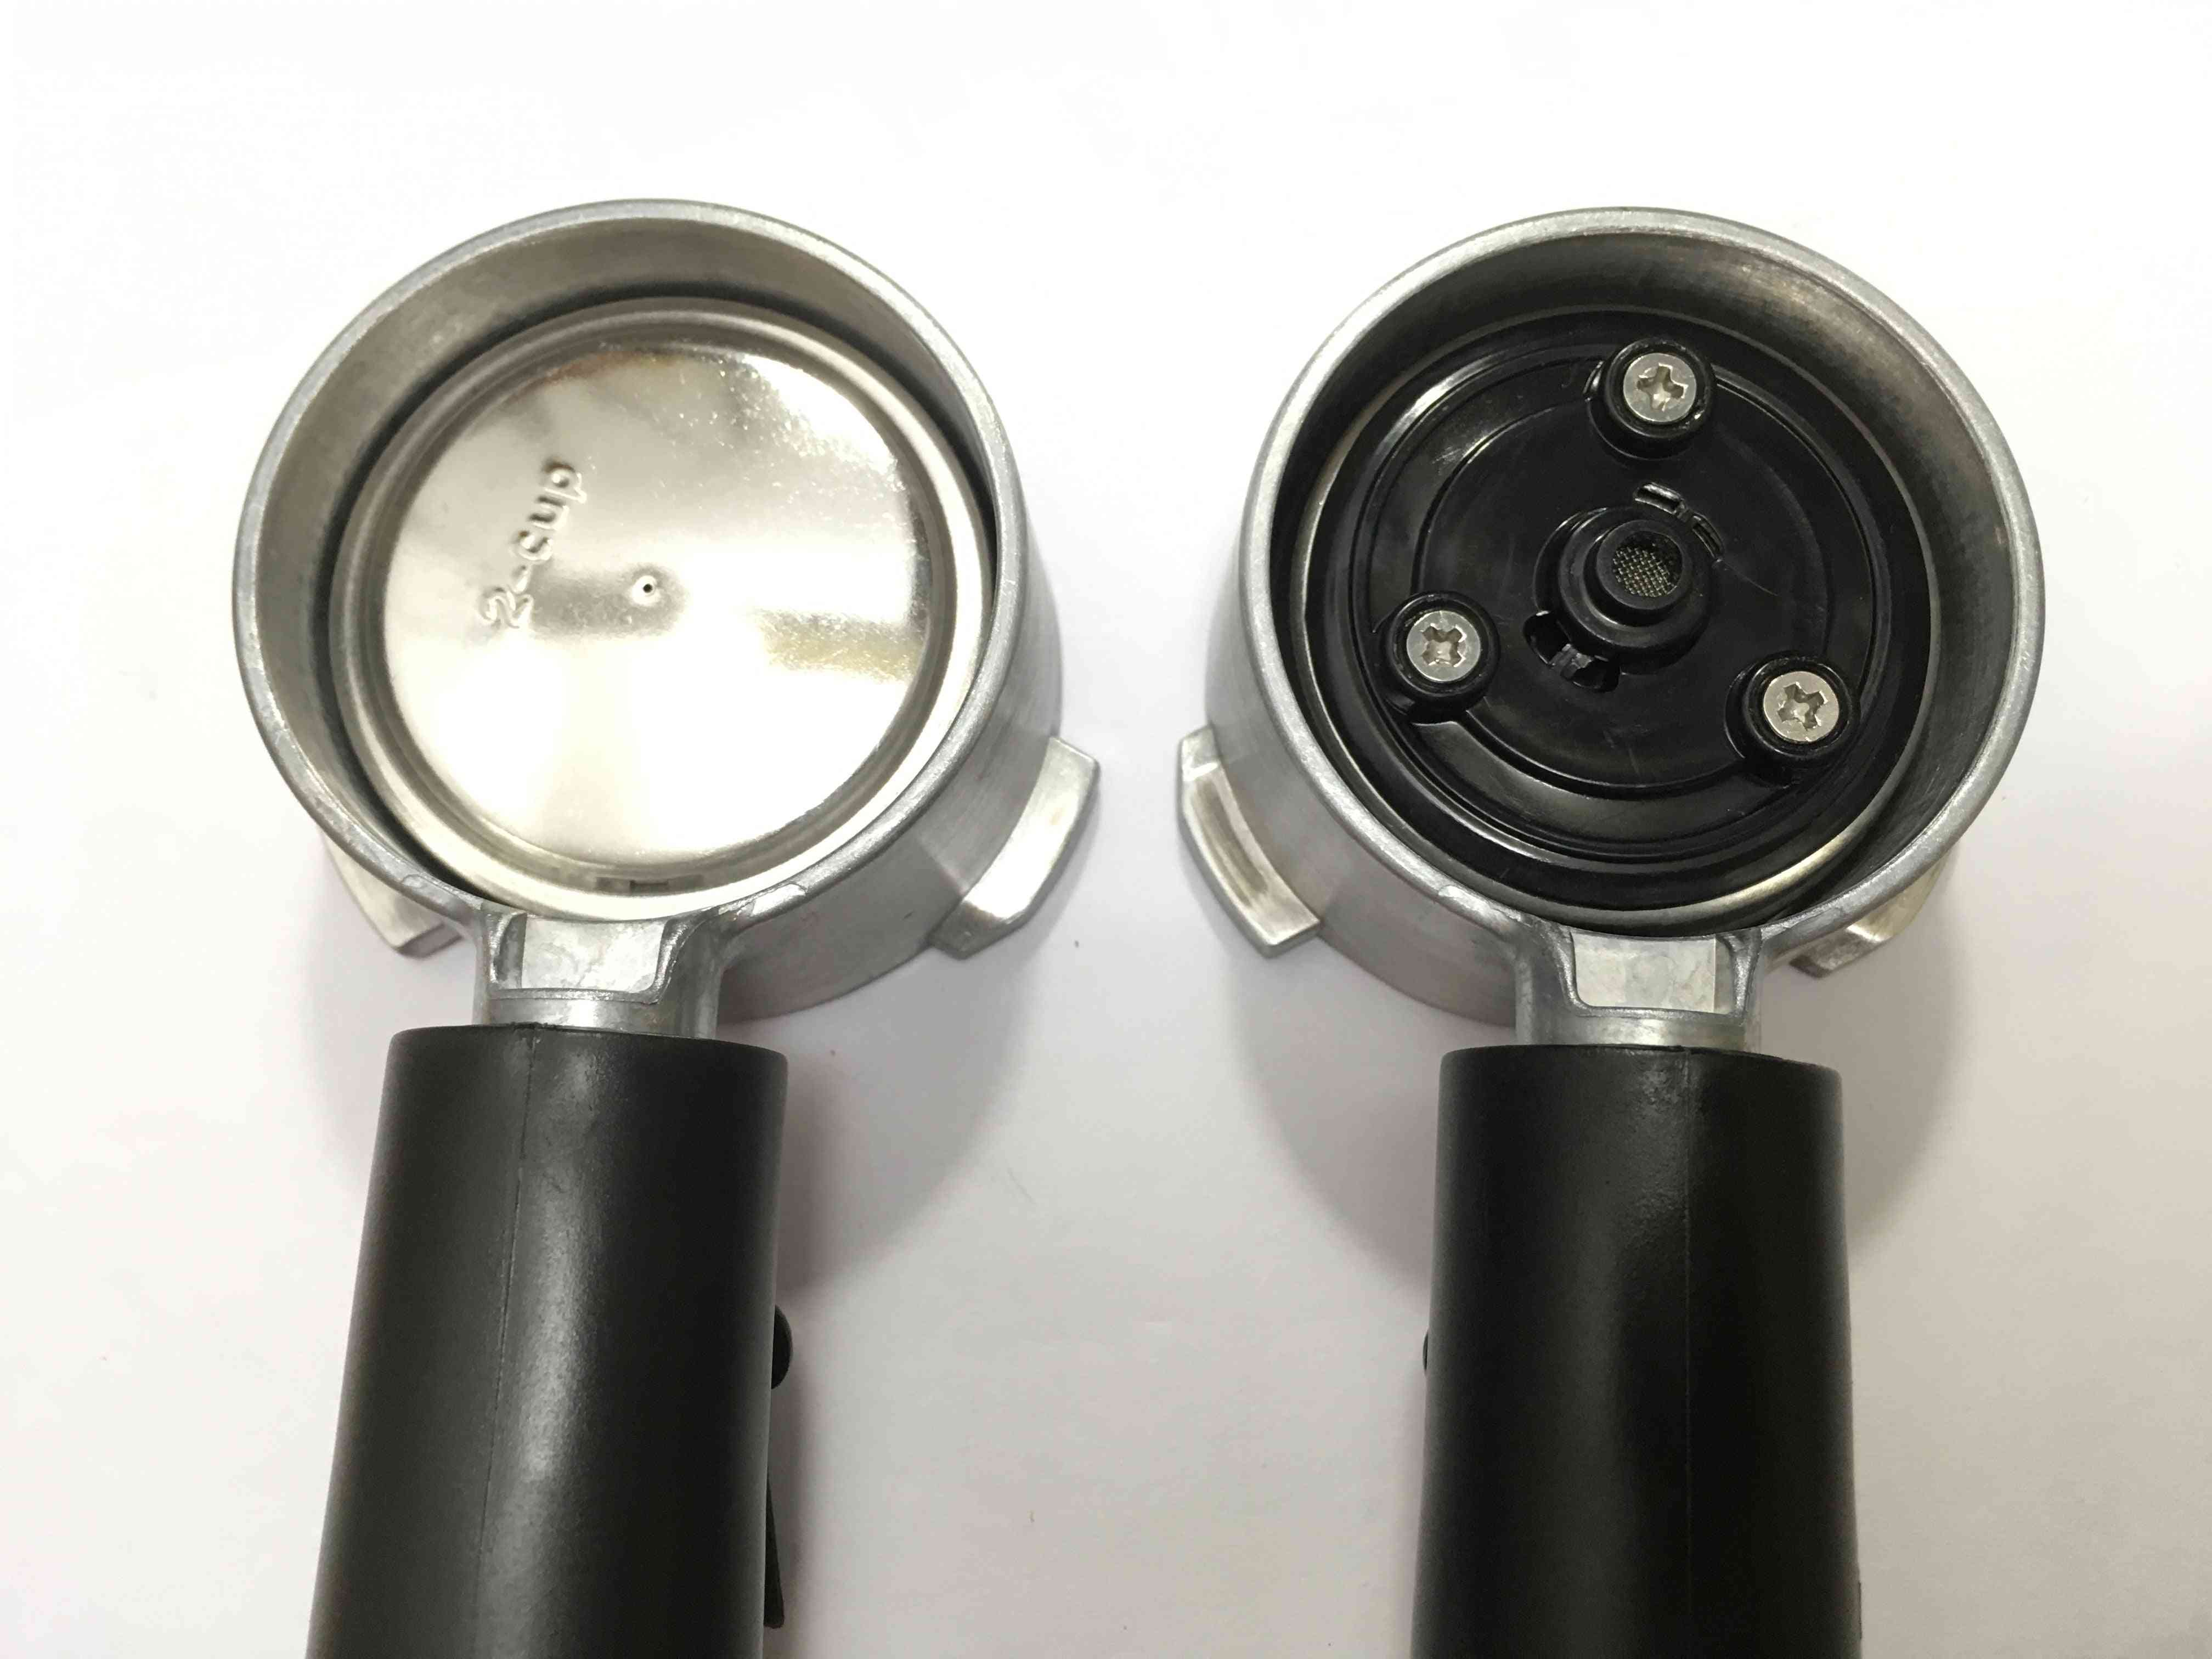 Bottomless-filter Holder Of Espresso Coffee Maker Parts